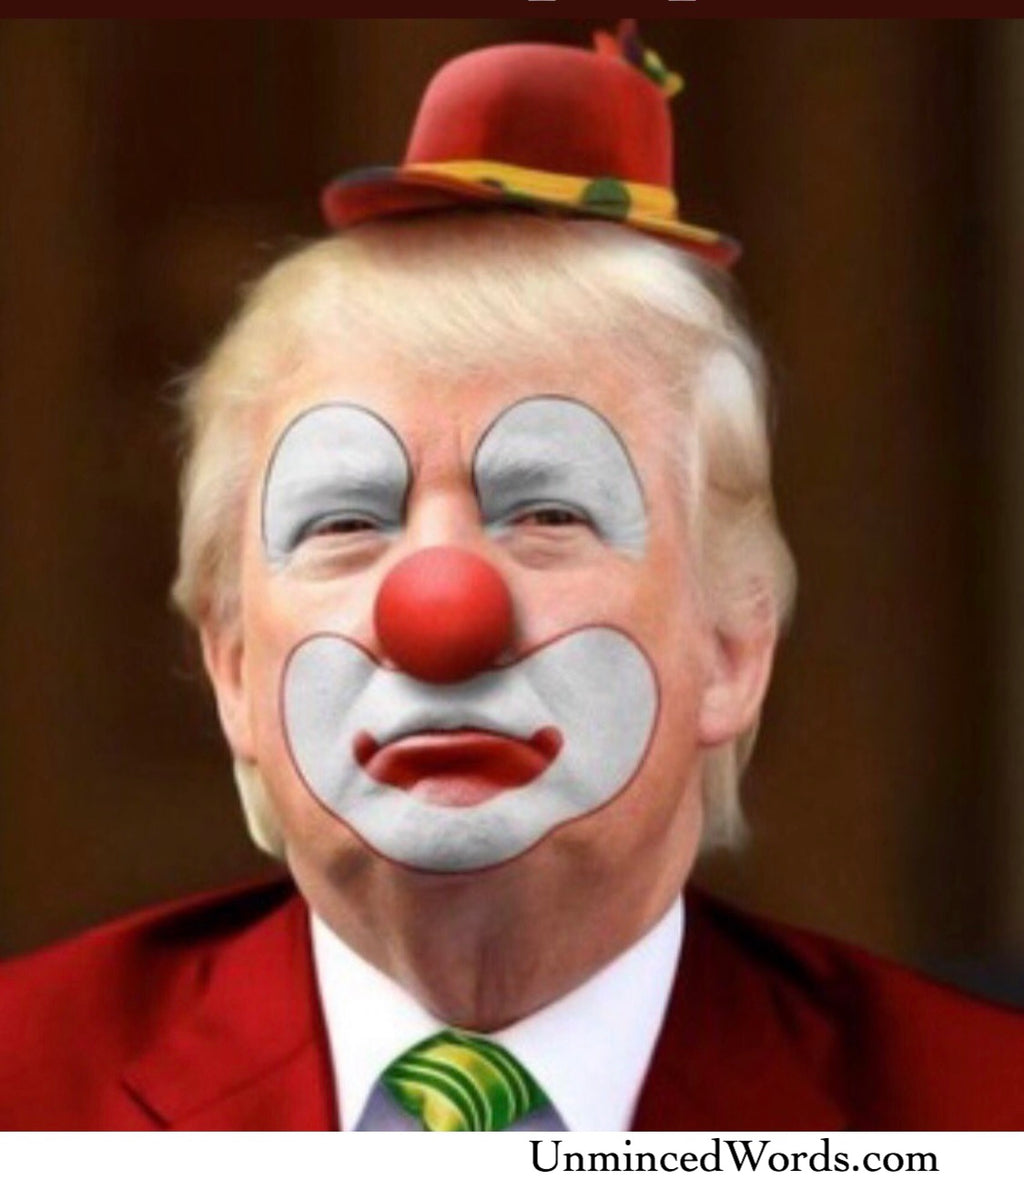 Clown Trump art shared by UnMinced Words